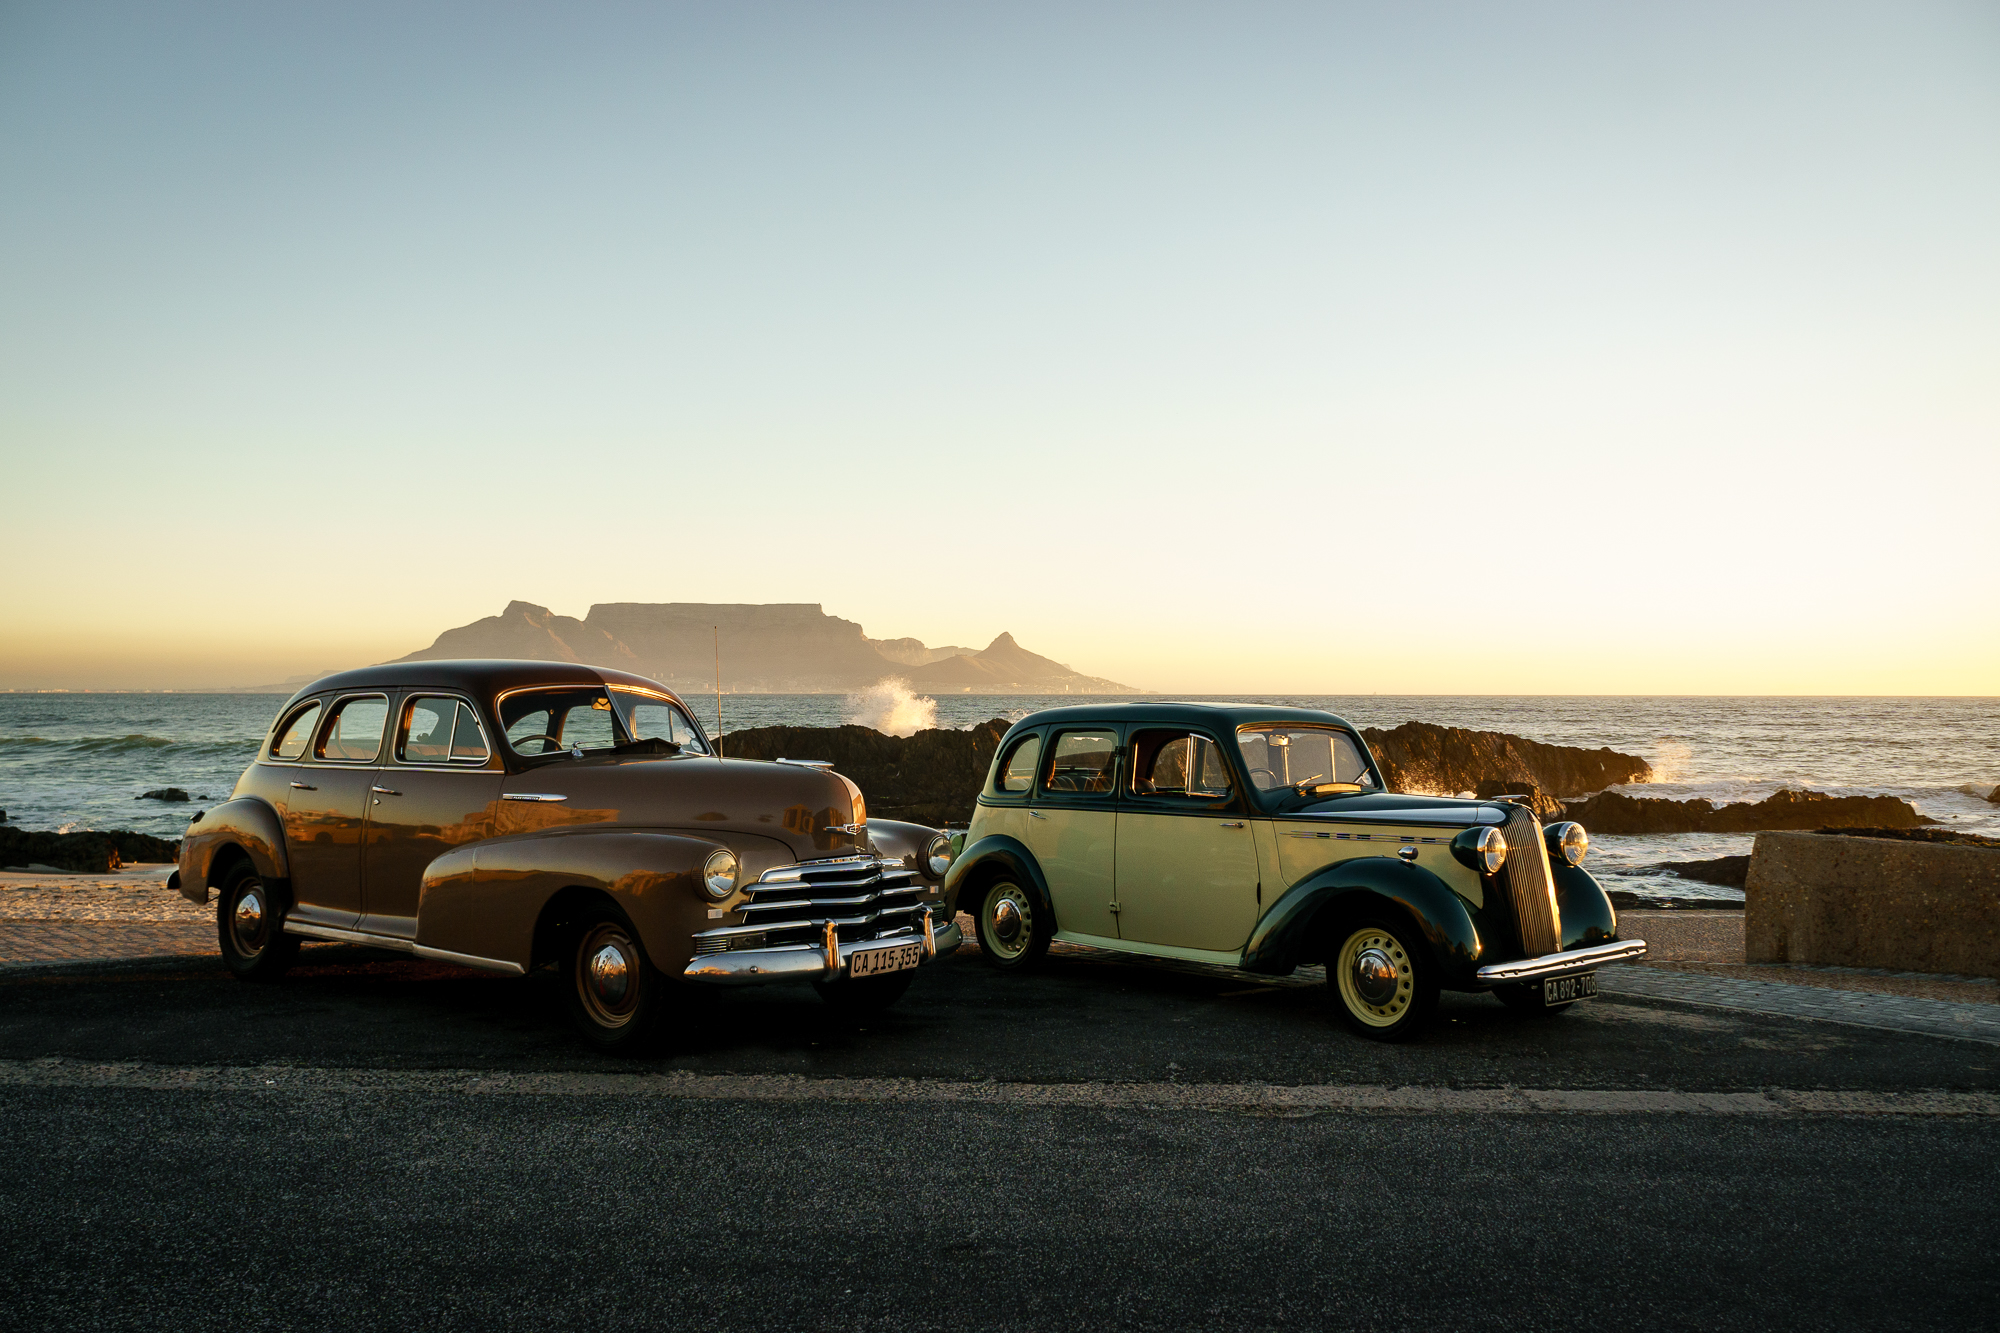 1937 Vauxhall and 1947 Fleetmaster